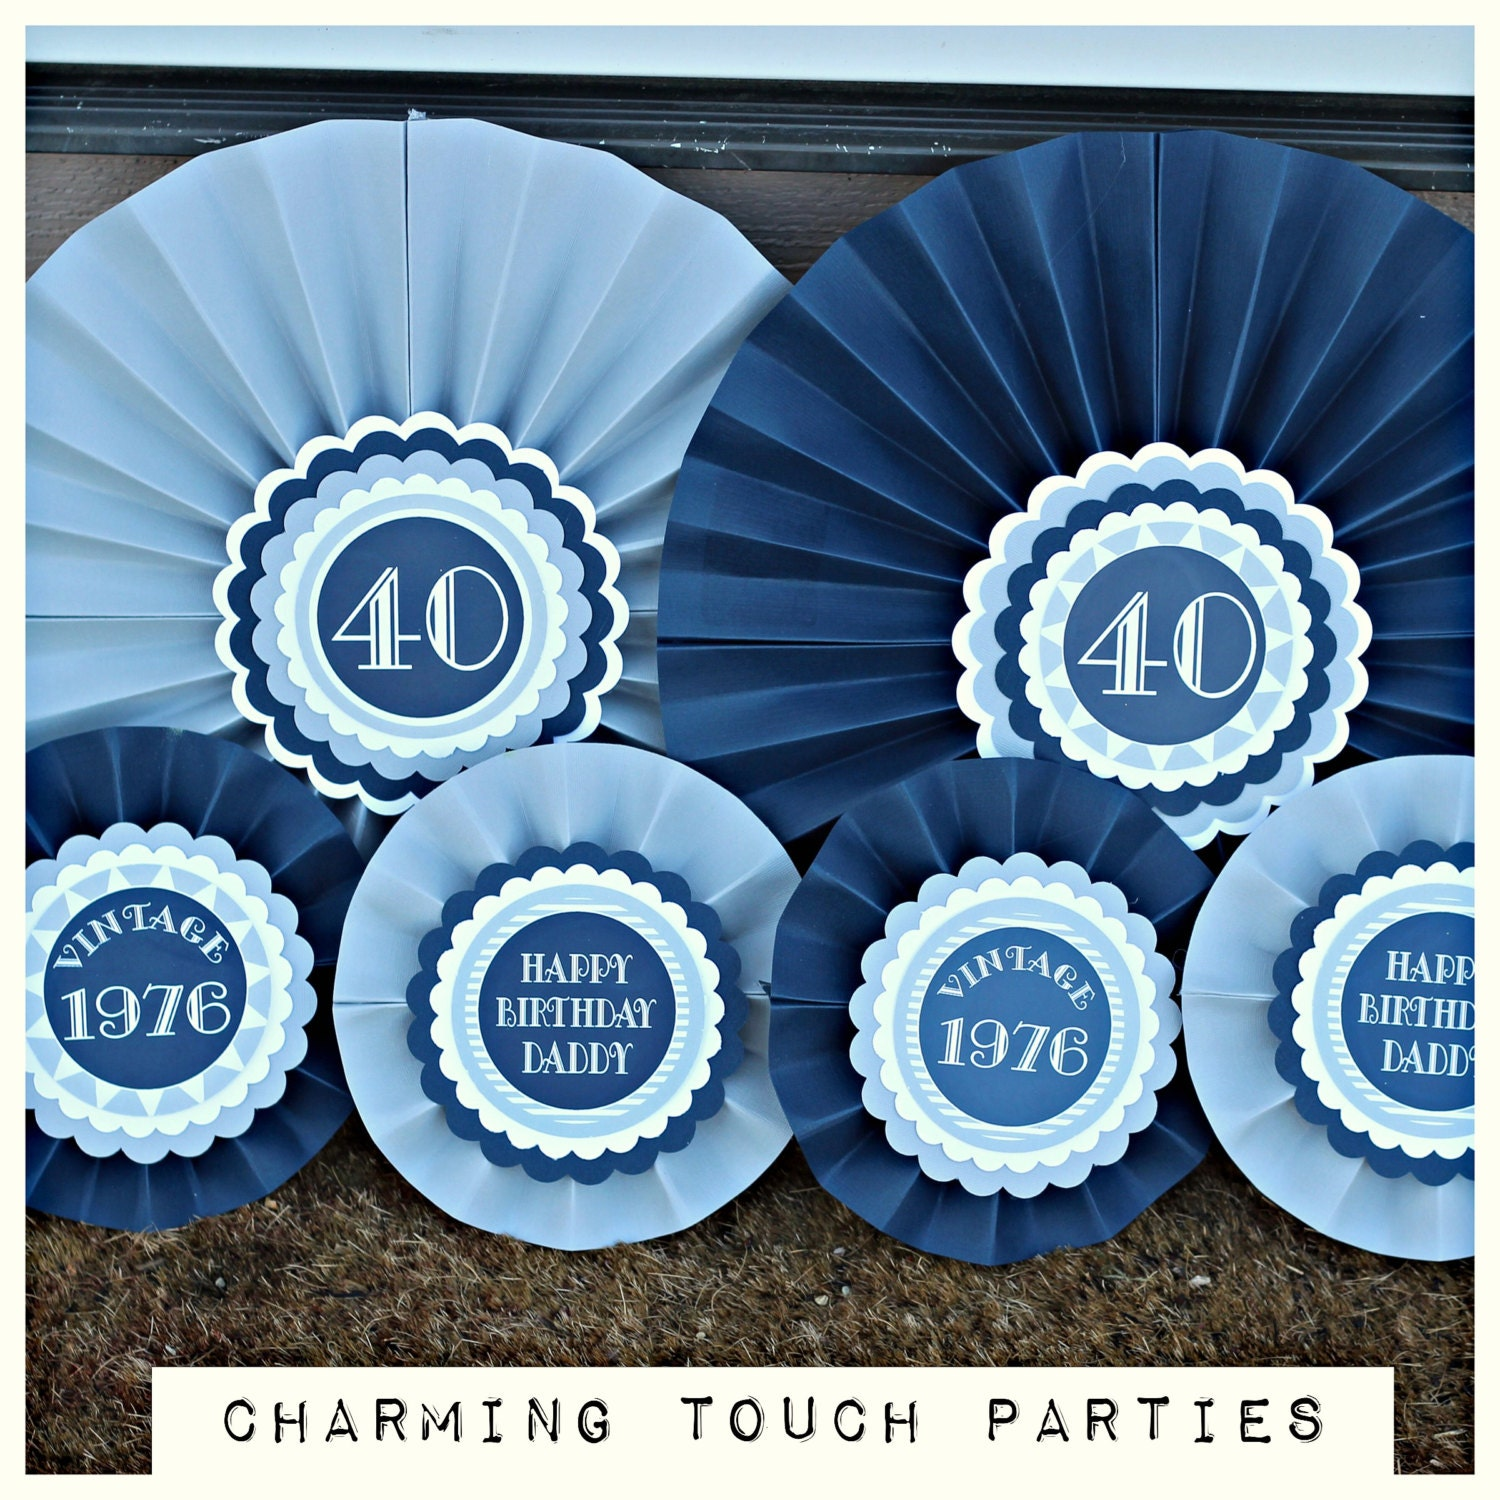 40th birthday party decorations decorative rosettes paper for 50th birthday decoration packages